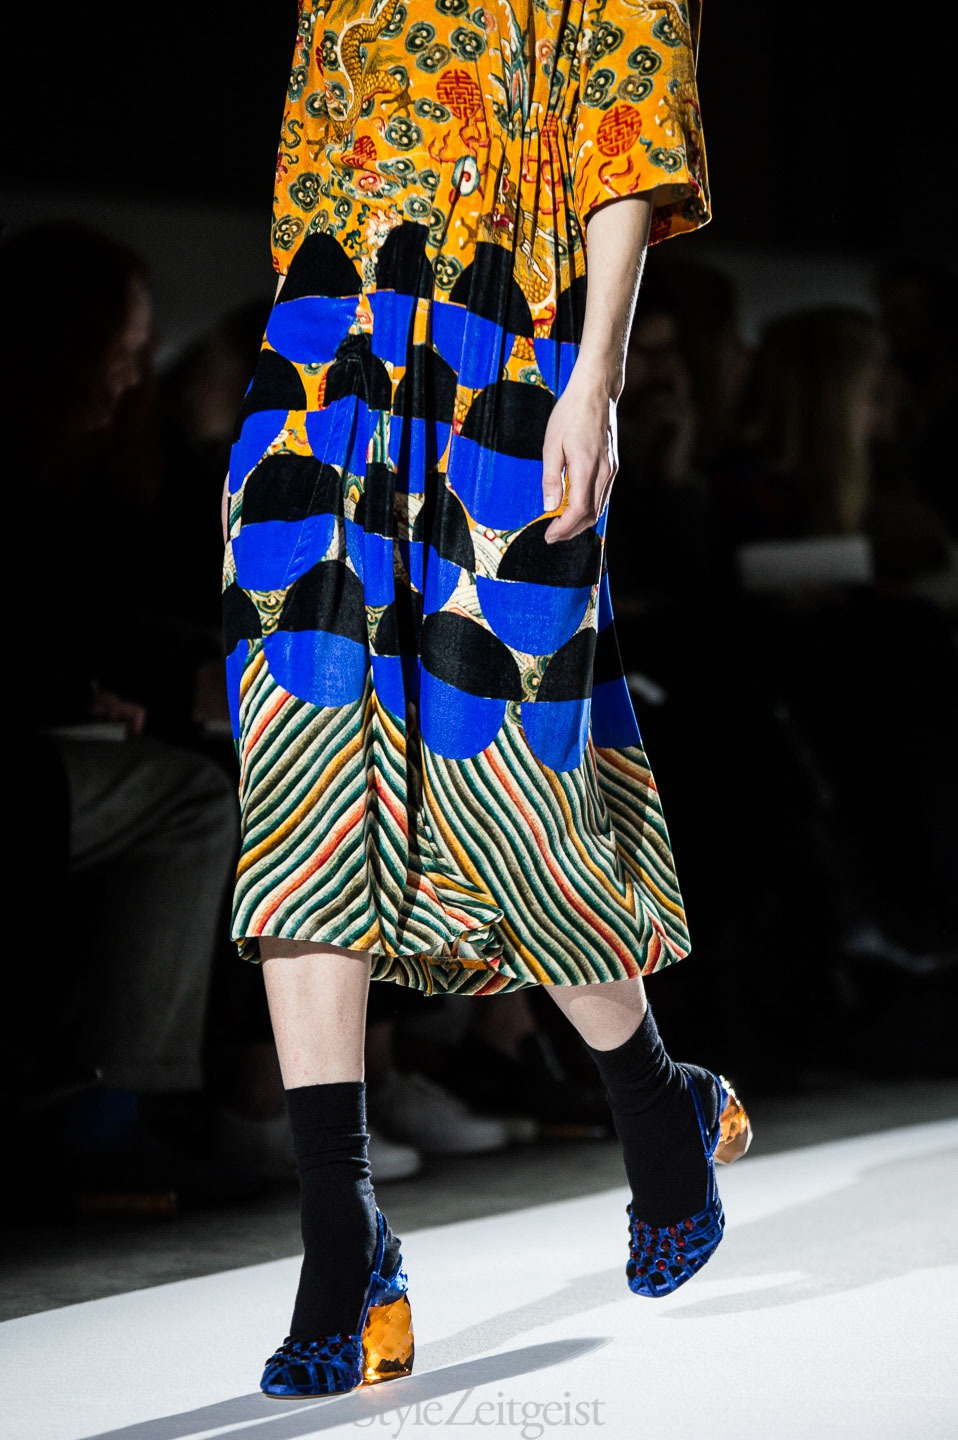 StyleZeitgeist Dries Van Noten F/W17 Women's - Paris Fashion    StyleZeitgeist Dries Van Noten F/W17 Women's - Paris Fashion    StyleZeitgeist Dries Van Noten F/W17 Women's - Paris Fashion    StyleZeitgeist Dries Van Noten F/W17 Women's - Paris Fashion    StyleZeitgeist Dries Van Noten F/W17 Women's - Paris Fashion    StyleZeitgeist Dries Van Noten F/W17 Women's - Paris Fashion    StyleZeitgeist Dries Van Noten F/W17 Women's - Paris Fashion    StyleZeitgeist Dries Van Noten F/W17 Women's - Paris Fashion    StyleZeitgeist Dries Van Noten F/W17 Women's - Paris Fashion